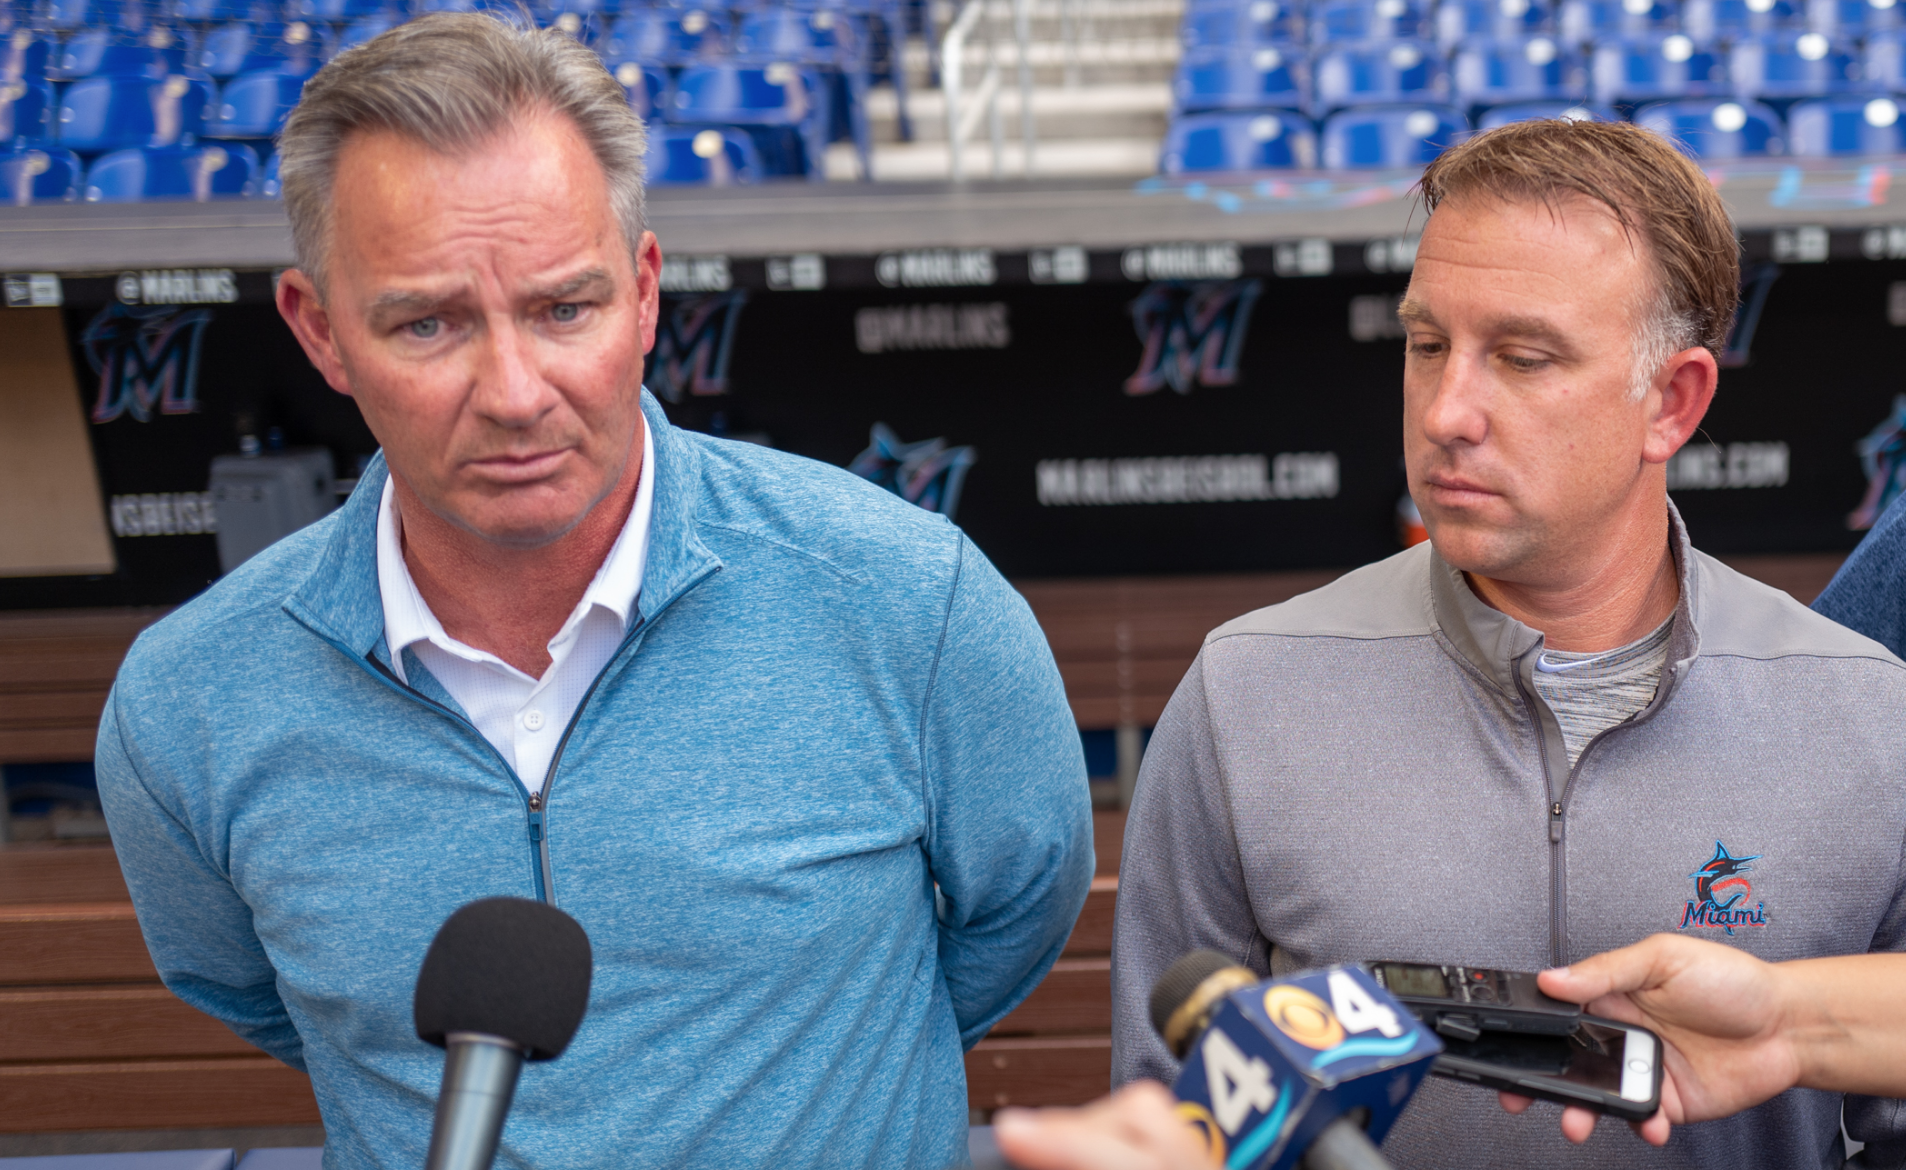 Vice President, Player Development and Scouting Gary Denbo, Director, and Amateur Scouting DJ Svihlik of the Miami Marlins speak with the media regarding the upcoming MLB Draft